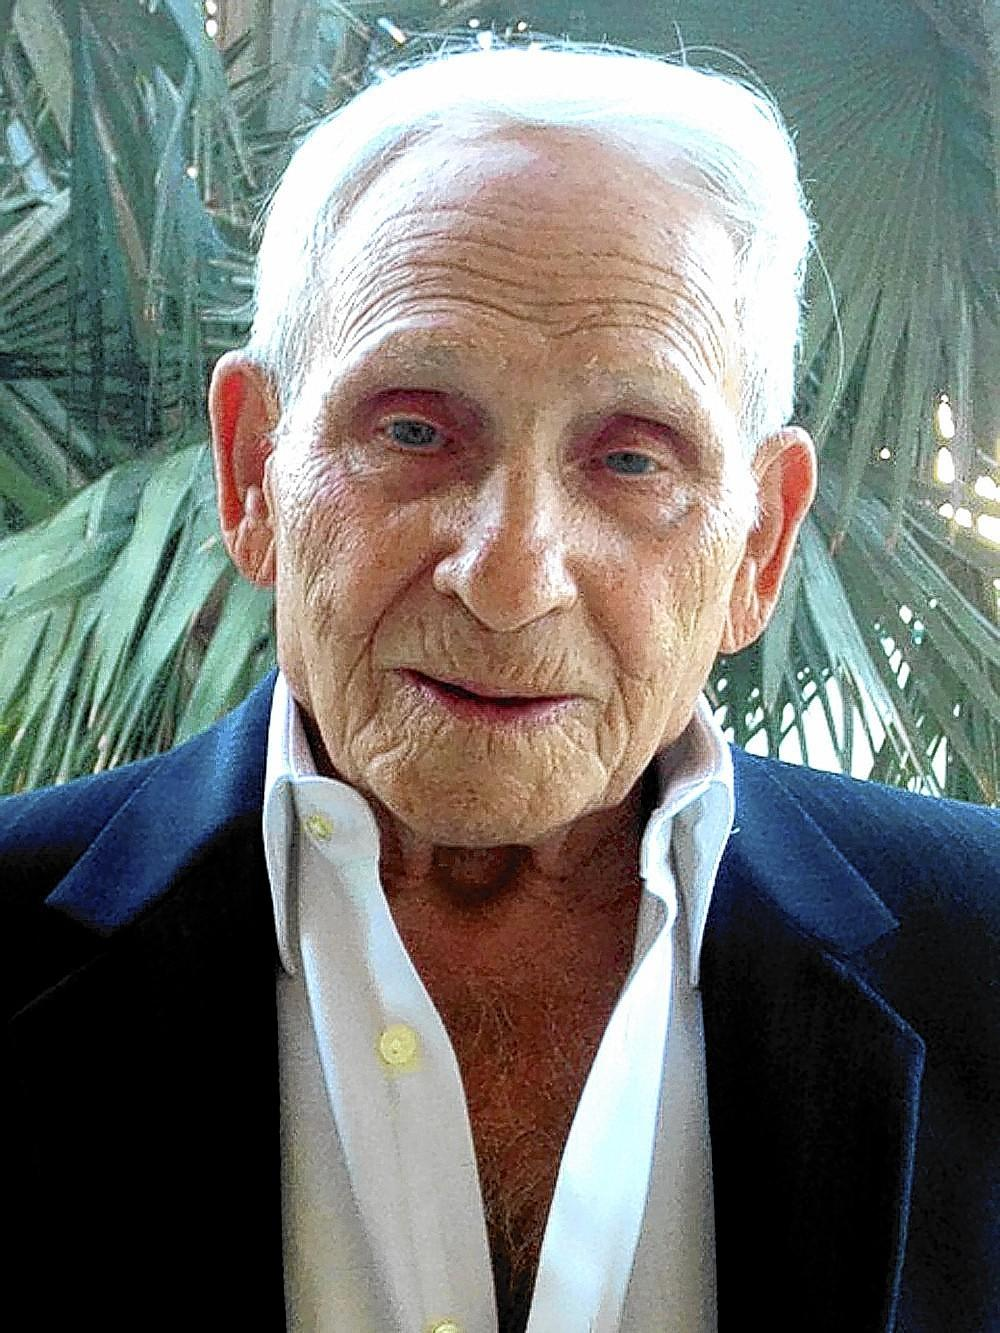 Aron Bell (Bielski), a Holocaust survivor who lives in Palm Beach, will be honored by The American Society for Yad Vashem at its inaugural Florida Tribute Dinner on Sunday, March 2, at Congregation B'nai Torah in Boca Raton.